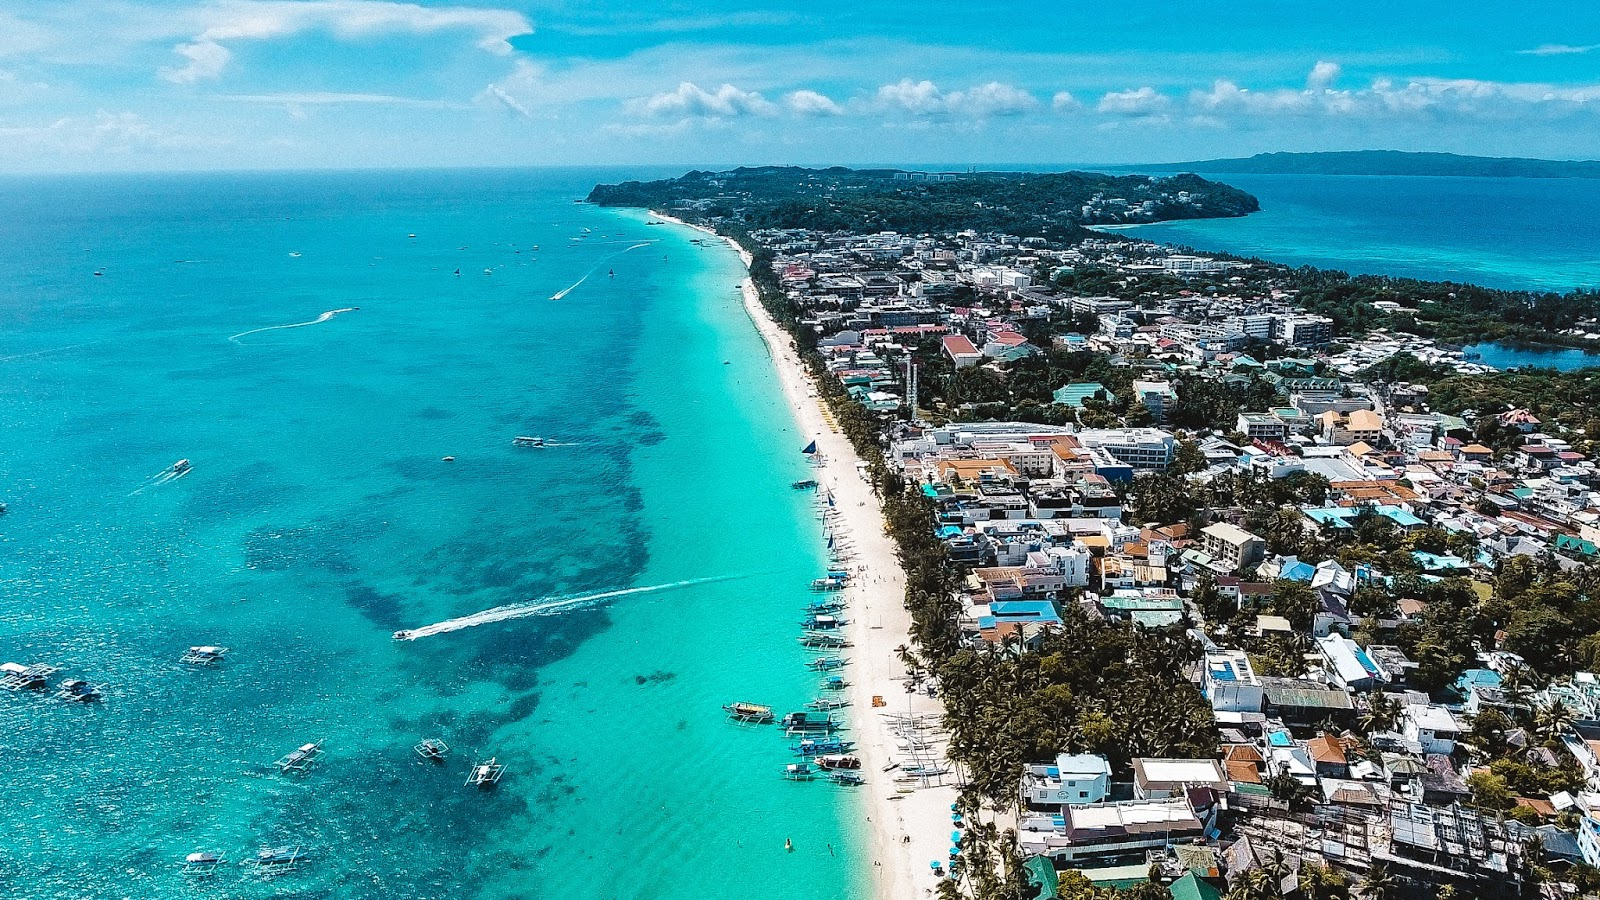 How To Make The Most Out Of A Weekend In Boracay, Philippines